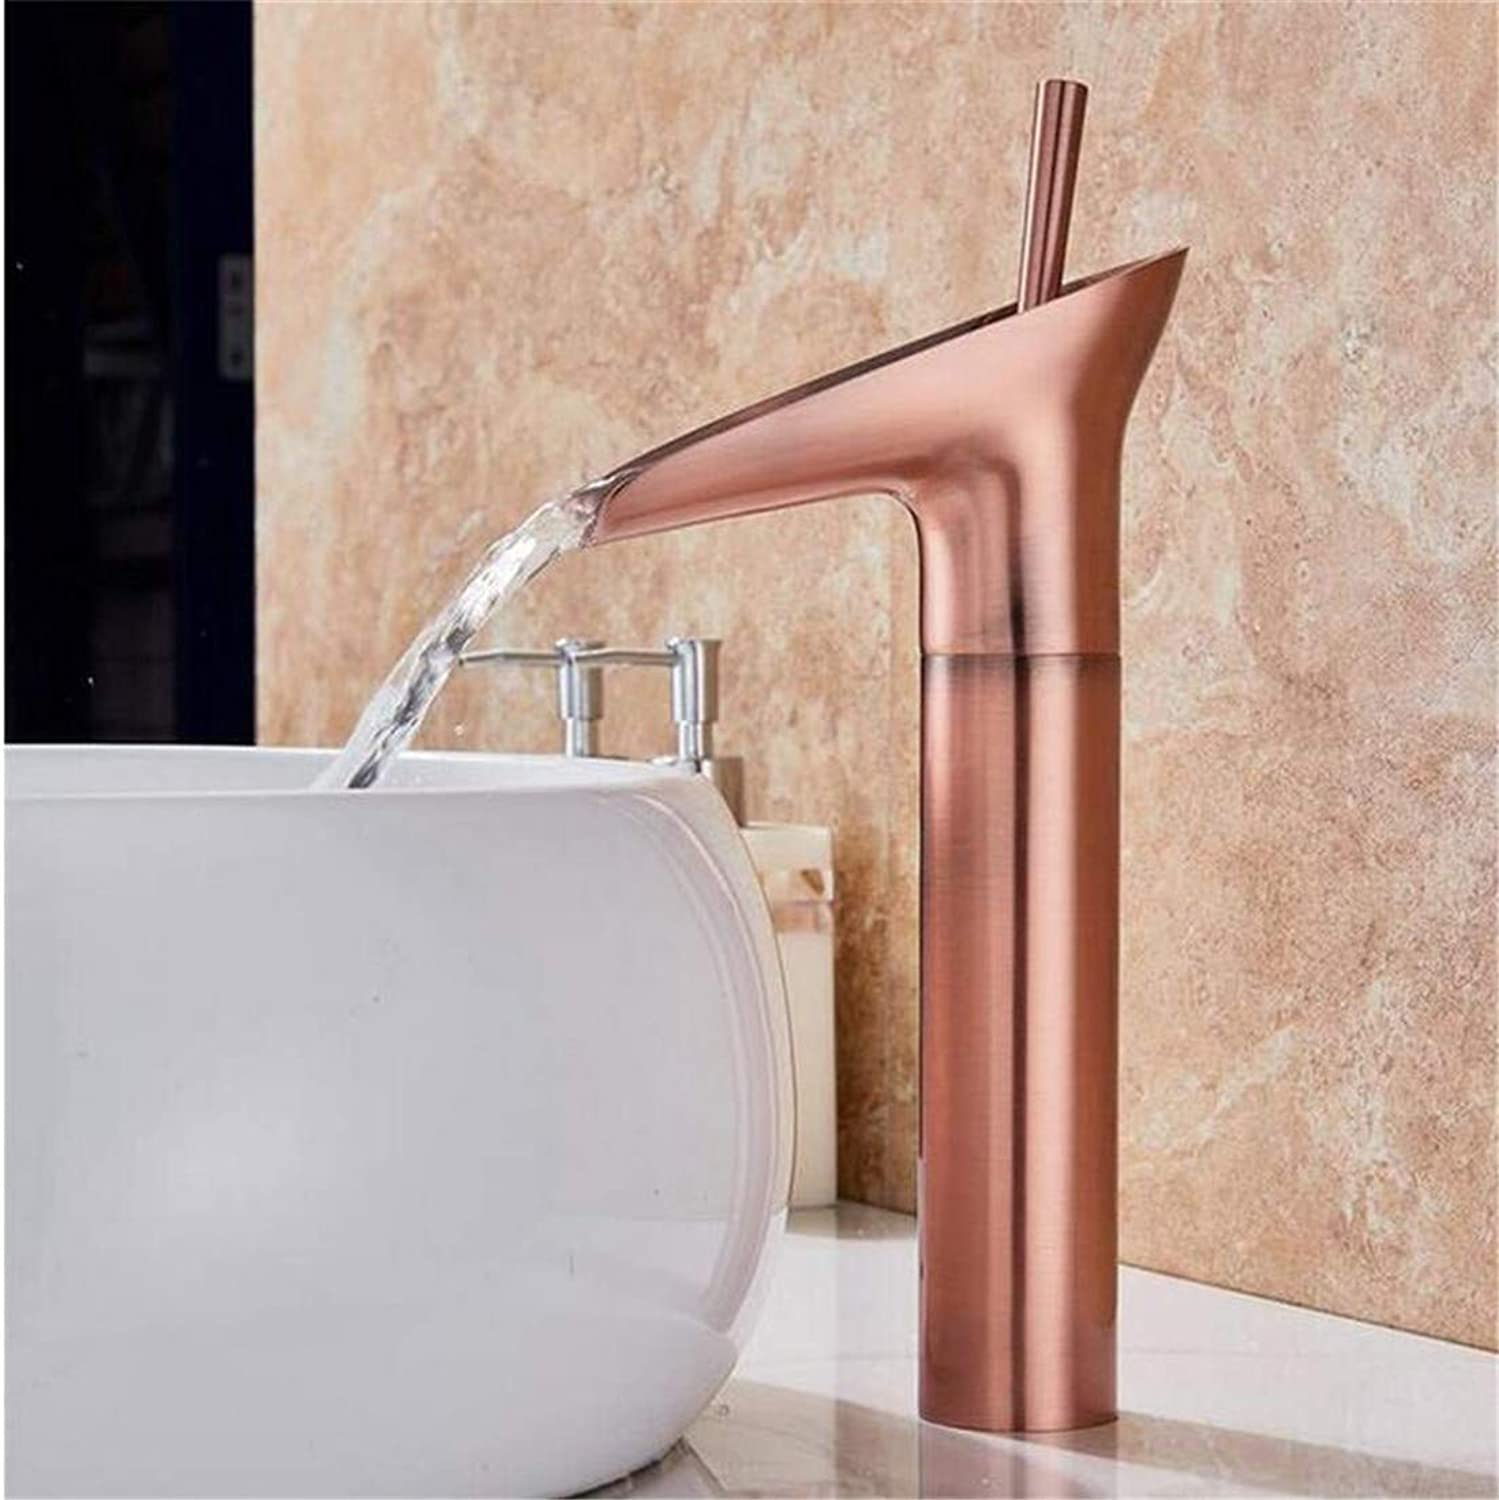 Faucet Modern Plated Kitchen Bathroom Faucet Basin Faucet Bathroom Sink Mixer Tap One Hole